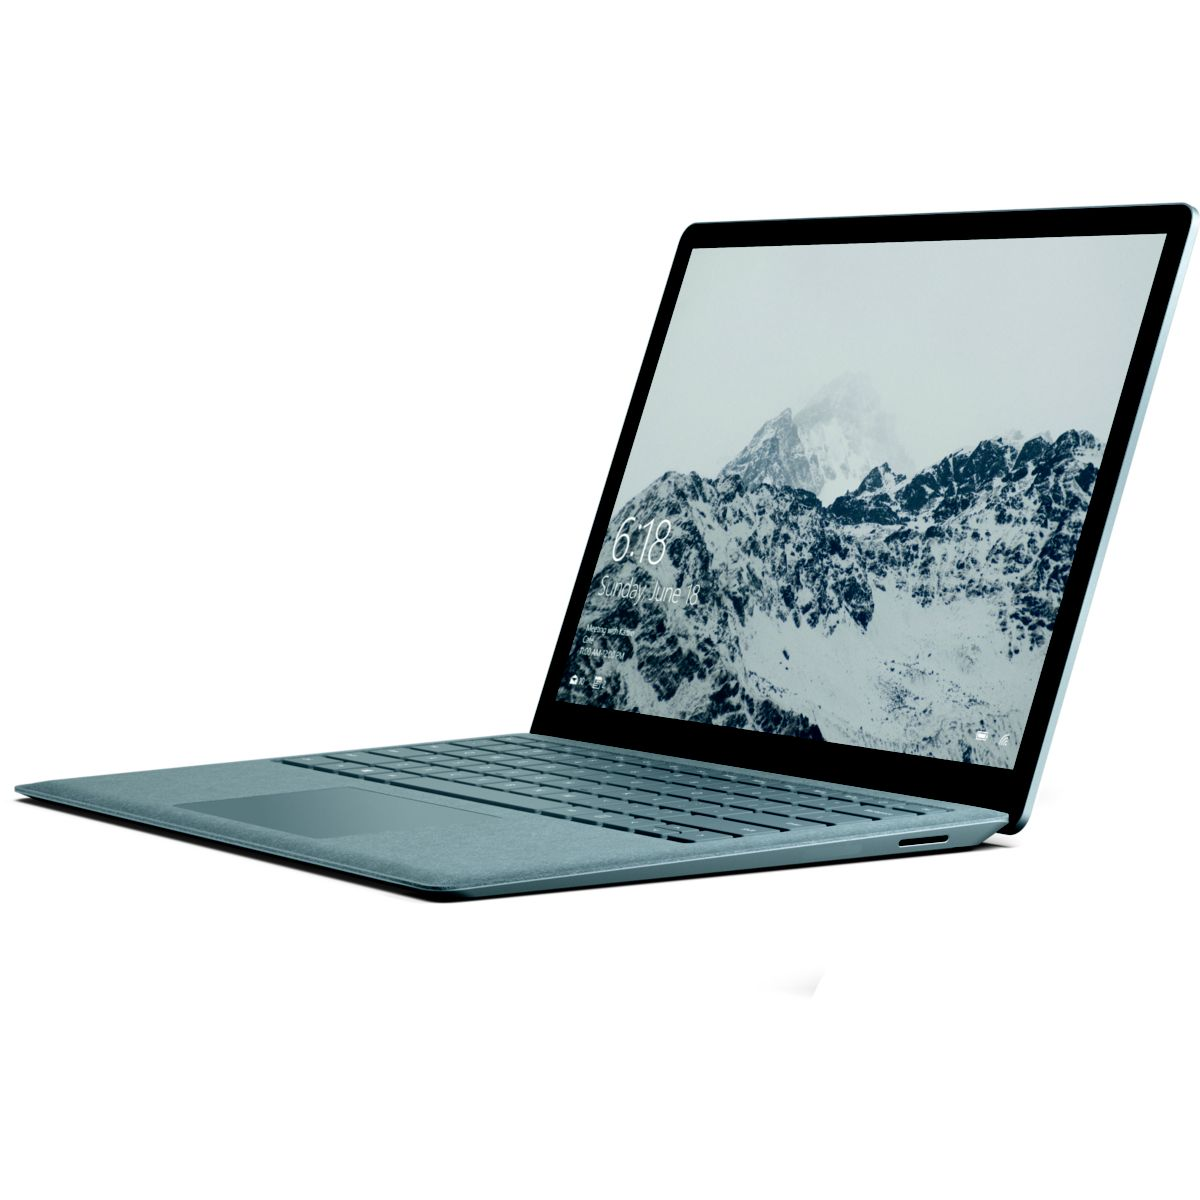 Portable MICROSOFT New Surface i7 8 256g